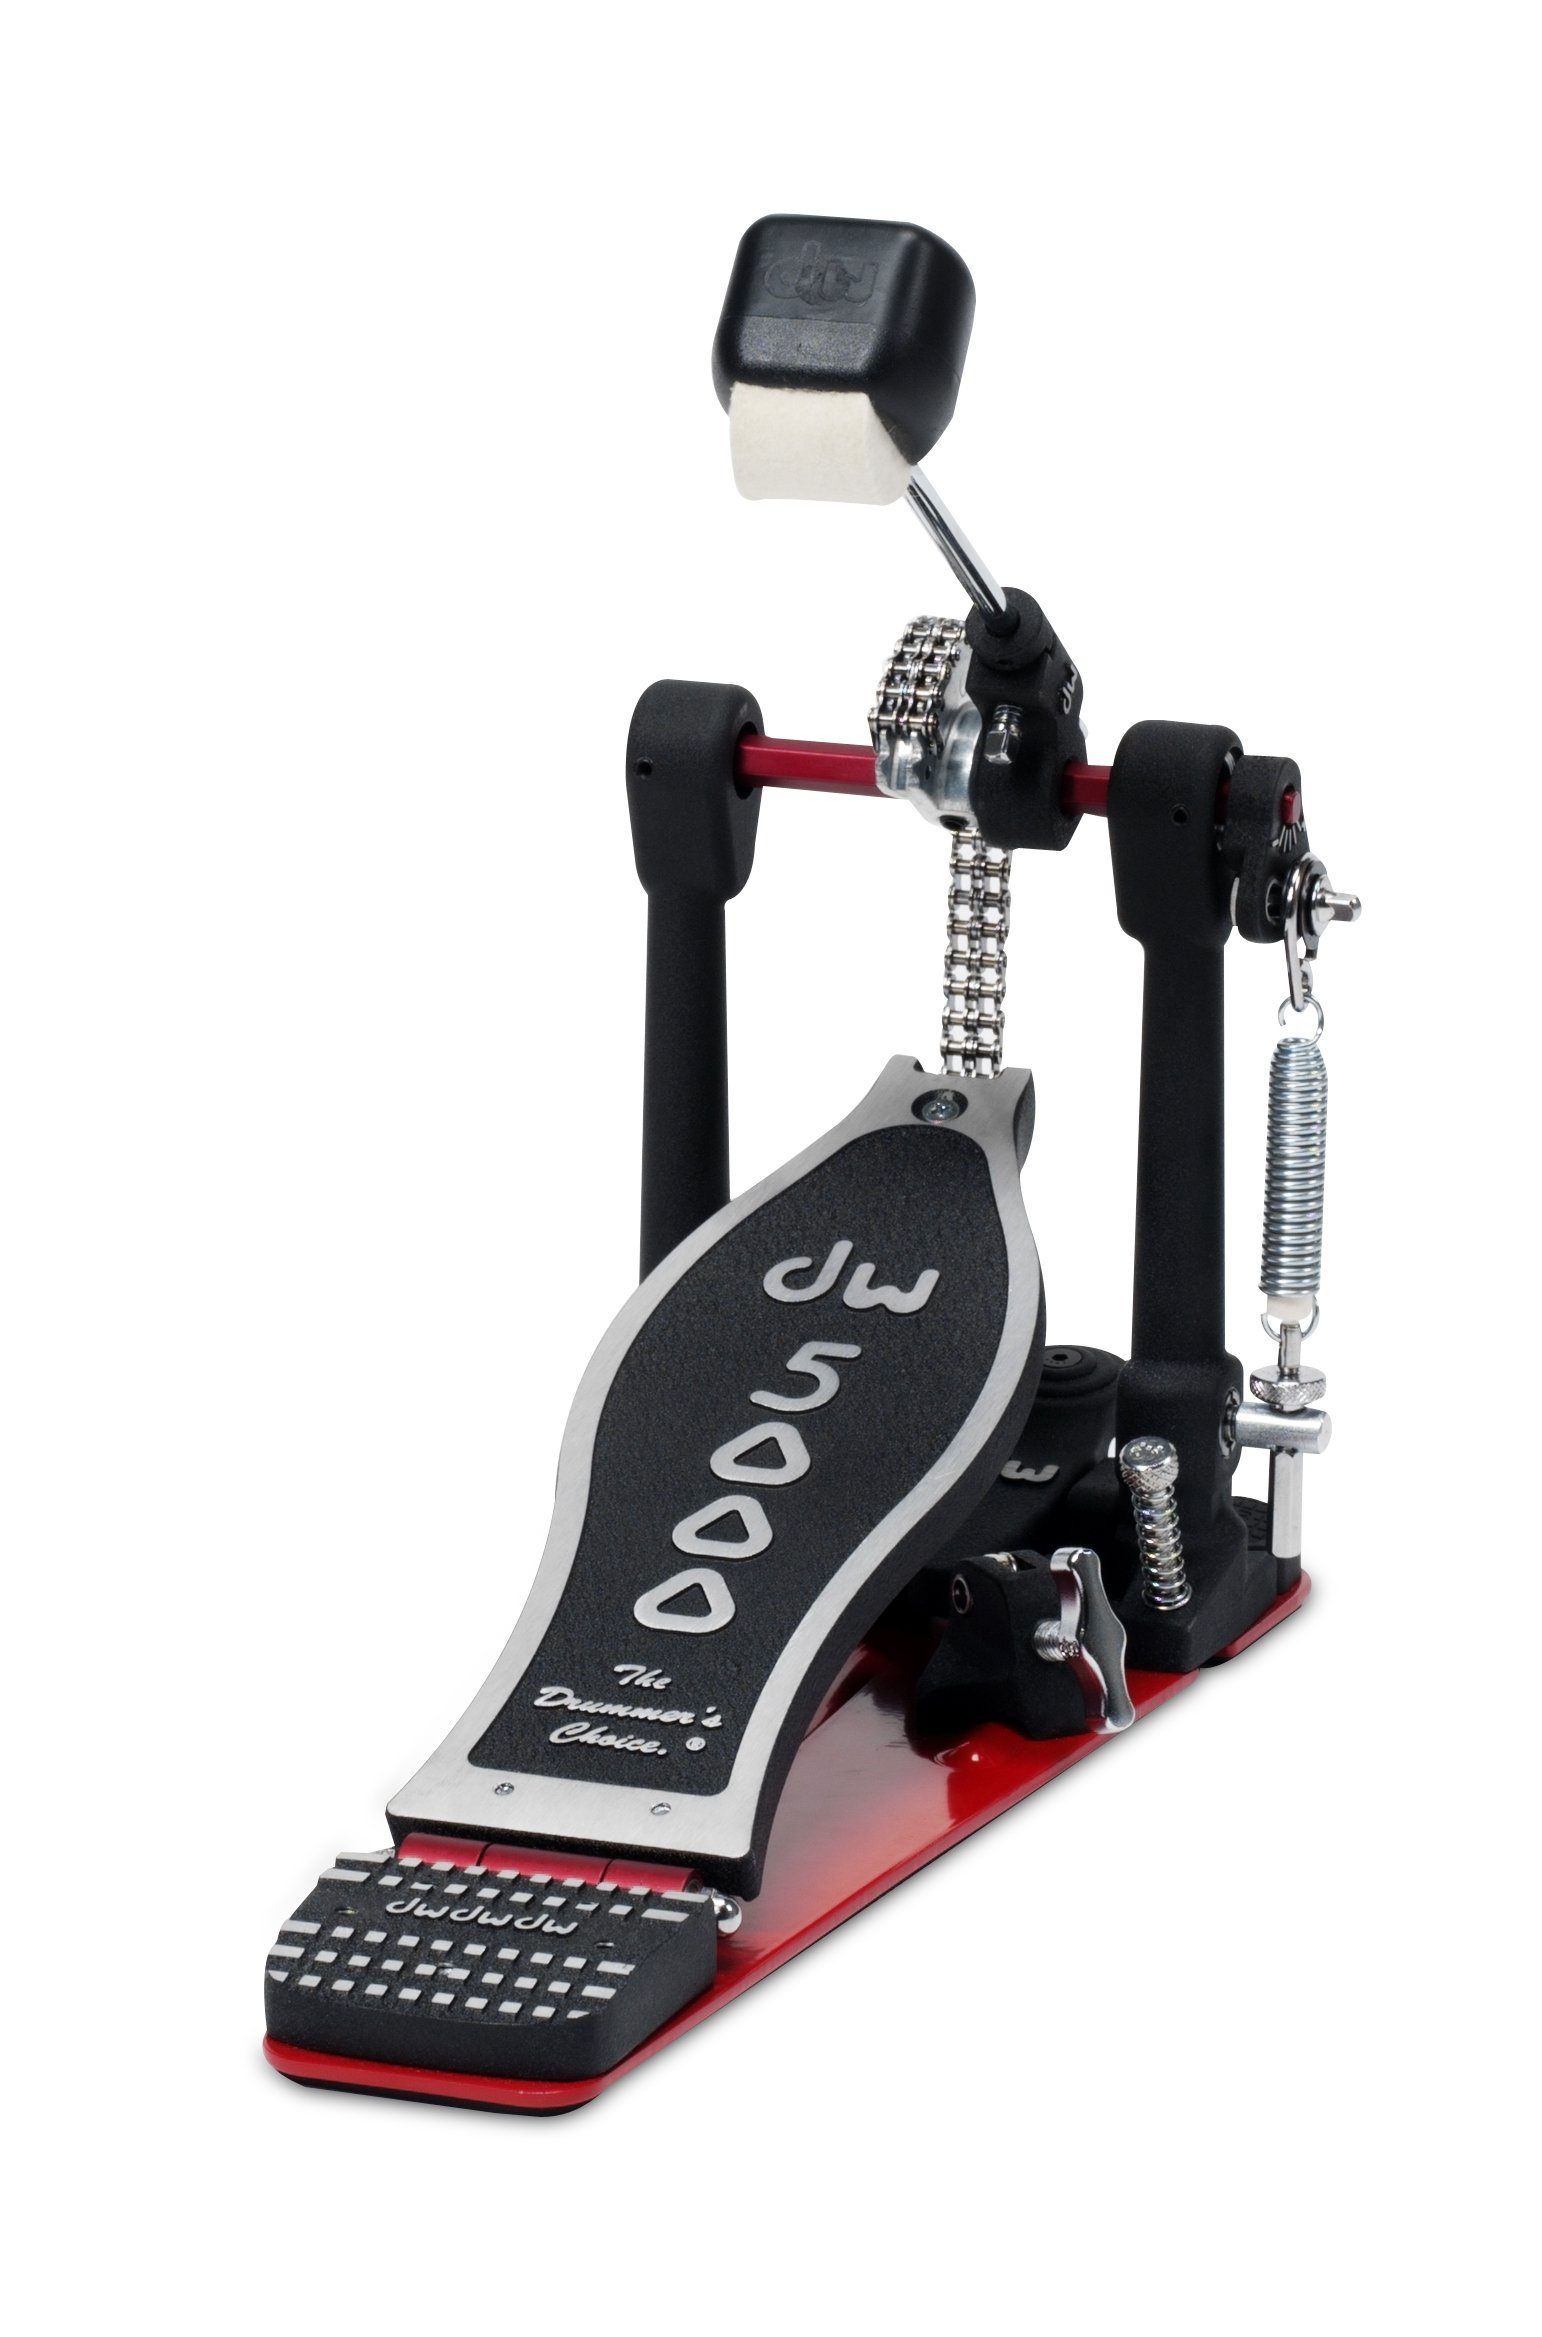 DW 5000 Turbo Single Bass Pedal by Drum Workshop, Inc.